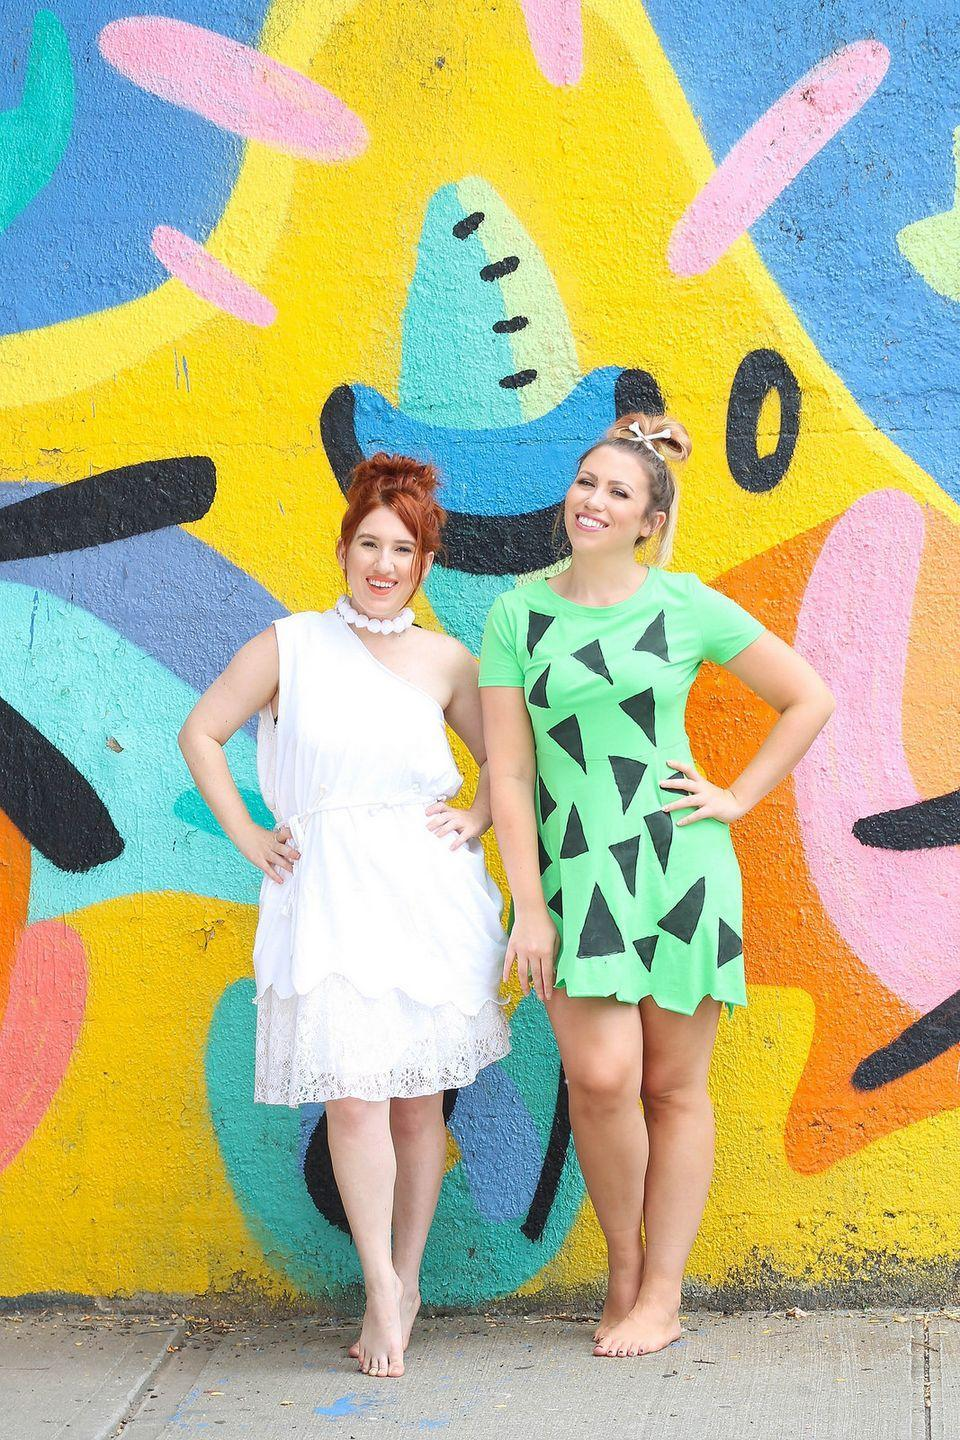 """<p>Have a <em>yabba dabba doo</em> time with your bestie as the female Flintstones.</p><p><strong>Get the tutorial at <a href=""""http://livingaftermidnite.com/2017/09/affordable-halloween-costumes-for-you-your-best-friend.html"""" rel=""""nofollow noopener"""" target=""""_blank"""" data-ylk=""""slk:Living After Midnite"""" class=""""link rapid-noclick-resp"""">Living After Midnite</a>.</strong></p><p><strong><a class=""""link rapid-noclick-resp"""" href=""""https://www.amazon.com/HDE-Womens-Shoulder-Cocktail-Ruched/dp/B01I27U8FE/?tag=syn-yahoo-20&ascsubtag=%5Bartid%7C10050.g.21349110%5Bsrc%7Cyahoo-us"""" rel=""""nofollow noopener"""" target=""""_blank"""" data-ylk=""""slk:SHOP WHITE DRESS"""">SHOP WHITE DRESS</a></strong></p>"""